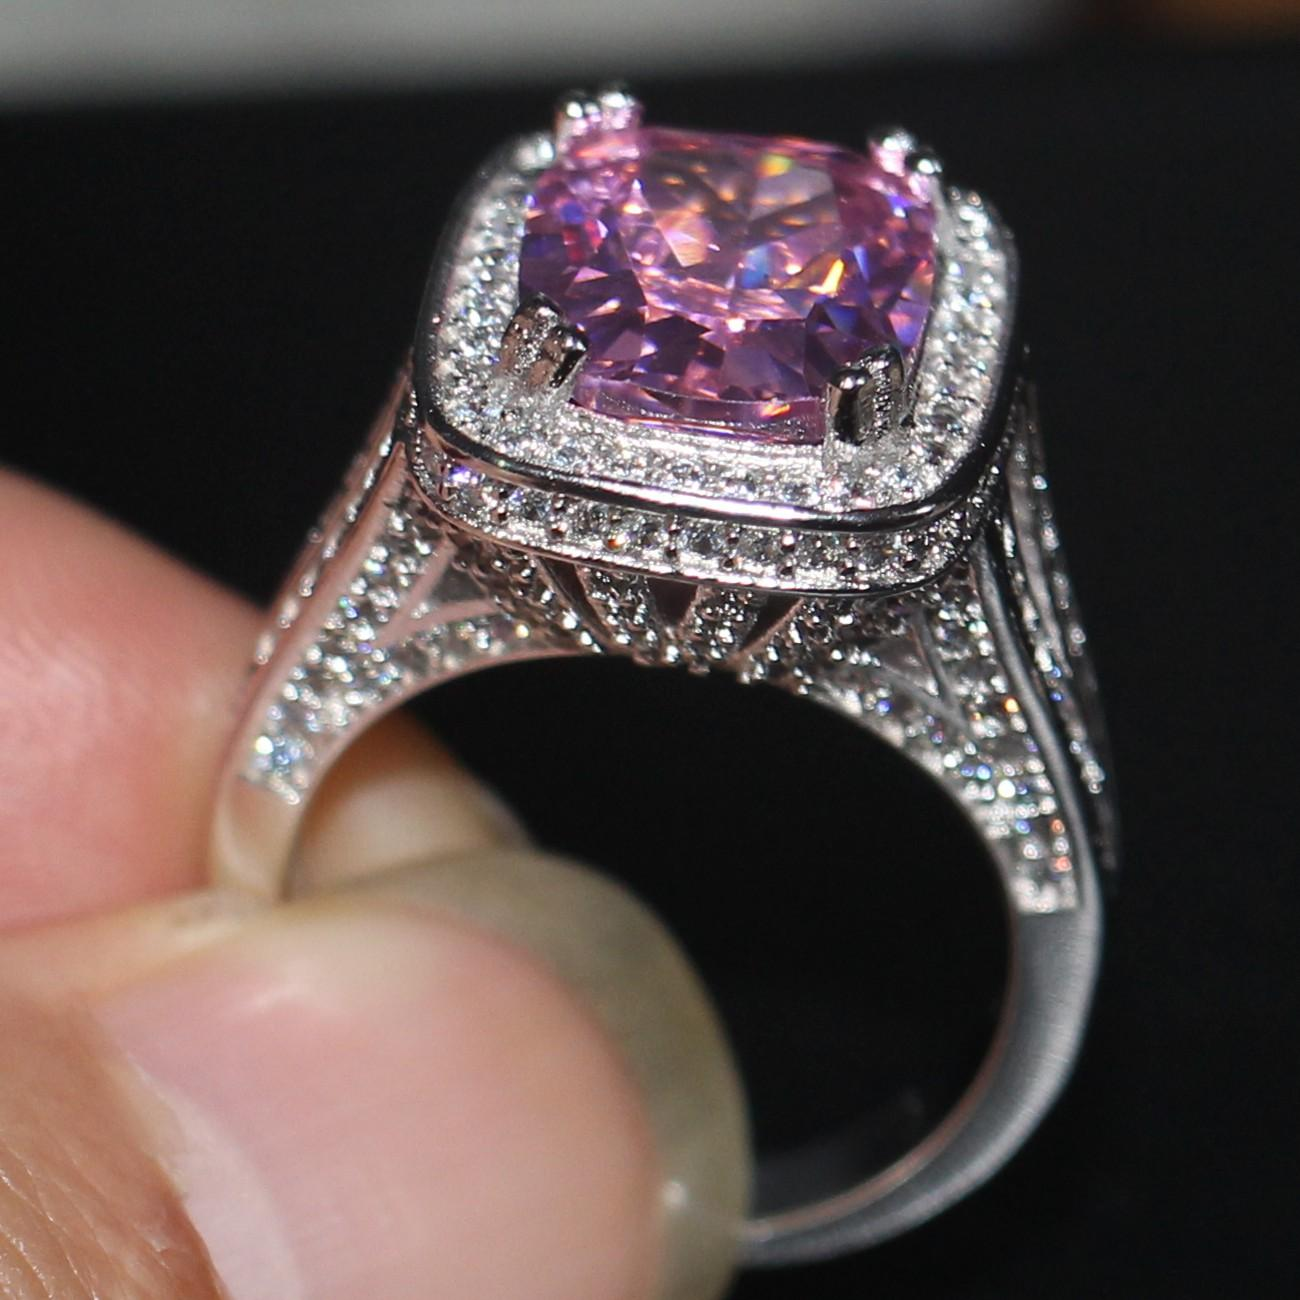 2019 10CT Big Pink Sapphire Luxury Jewelry 14kt White Gold Filled 192PCS Pave Tiny Zirconia Diamond Party Women Wedding Band Ring Ustore8